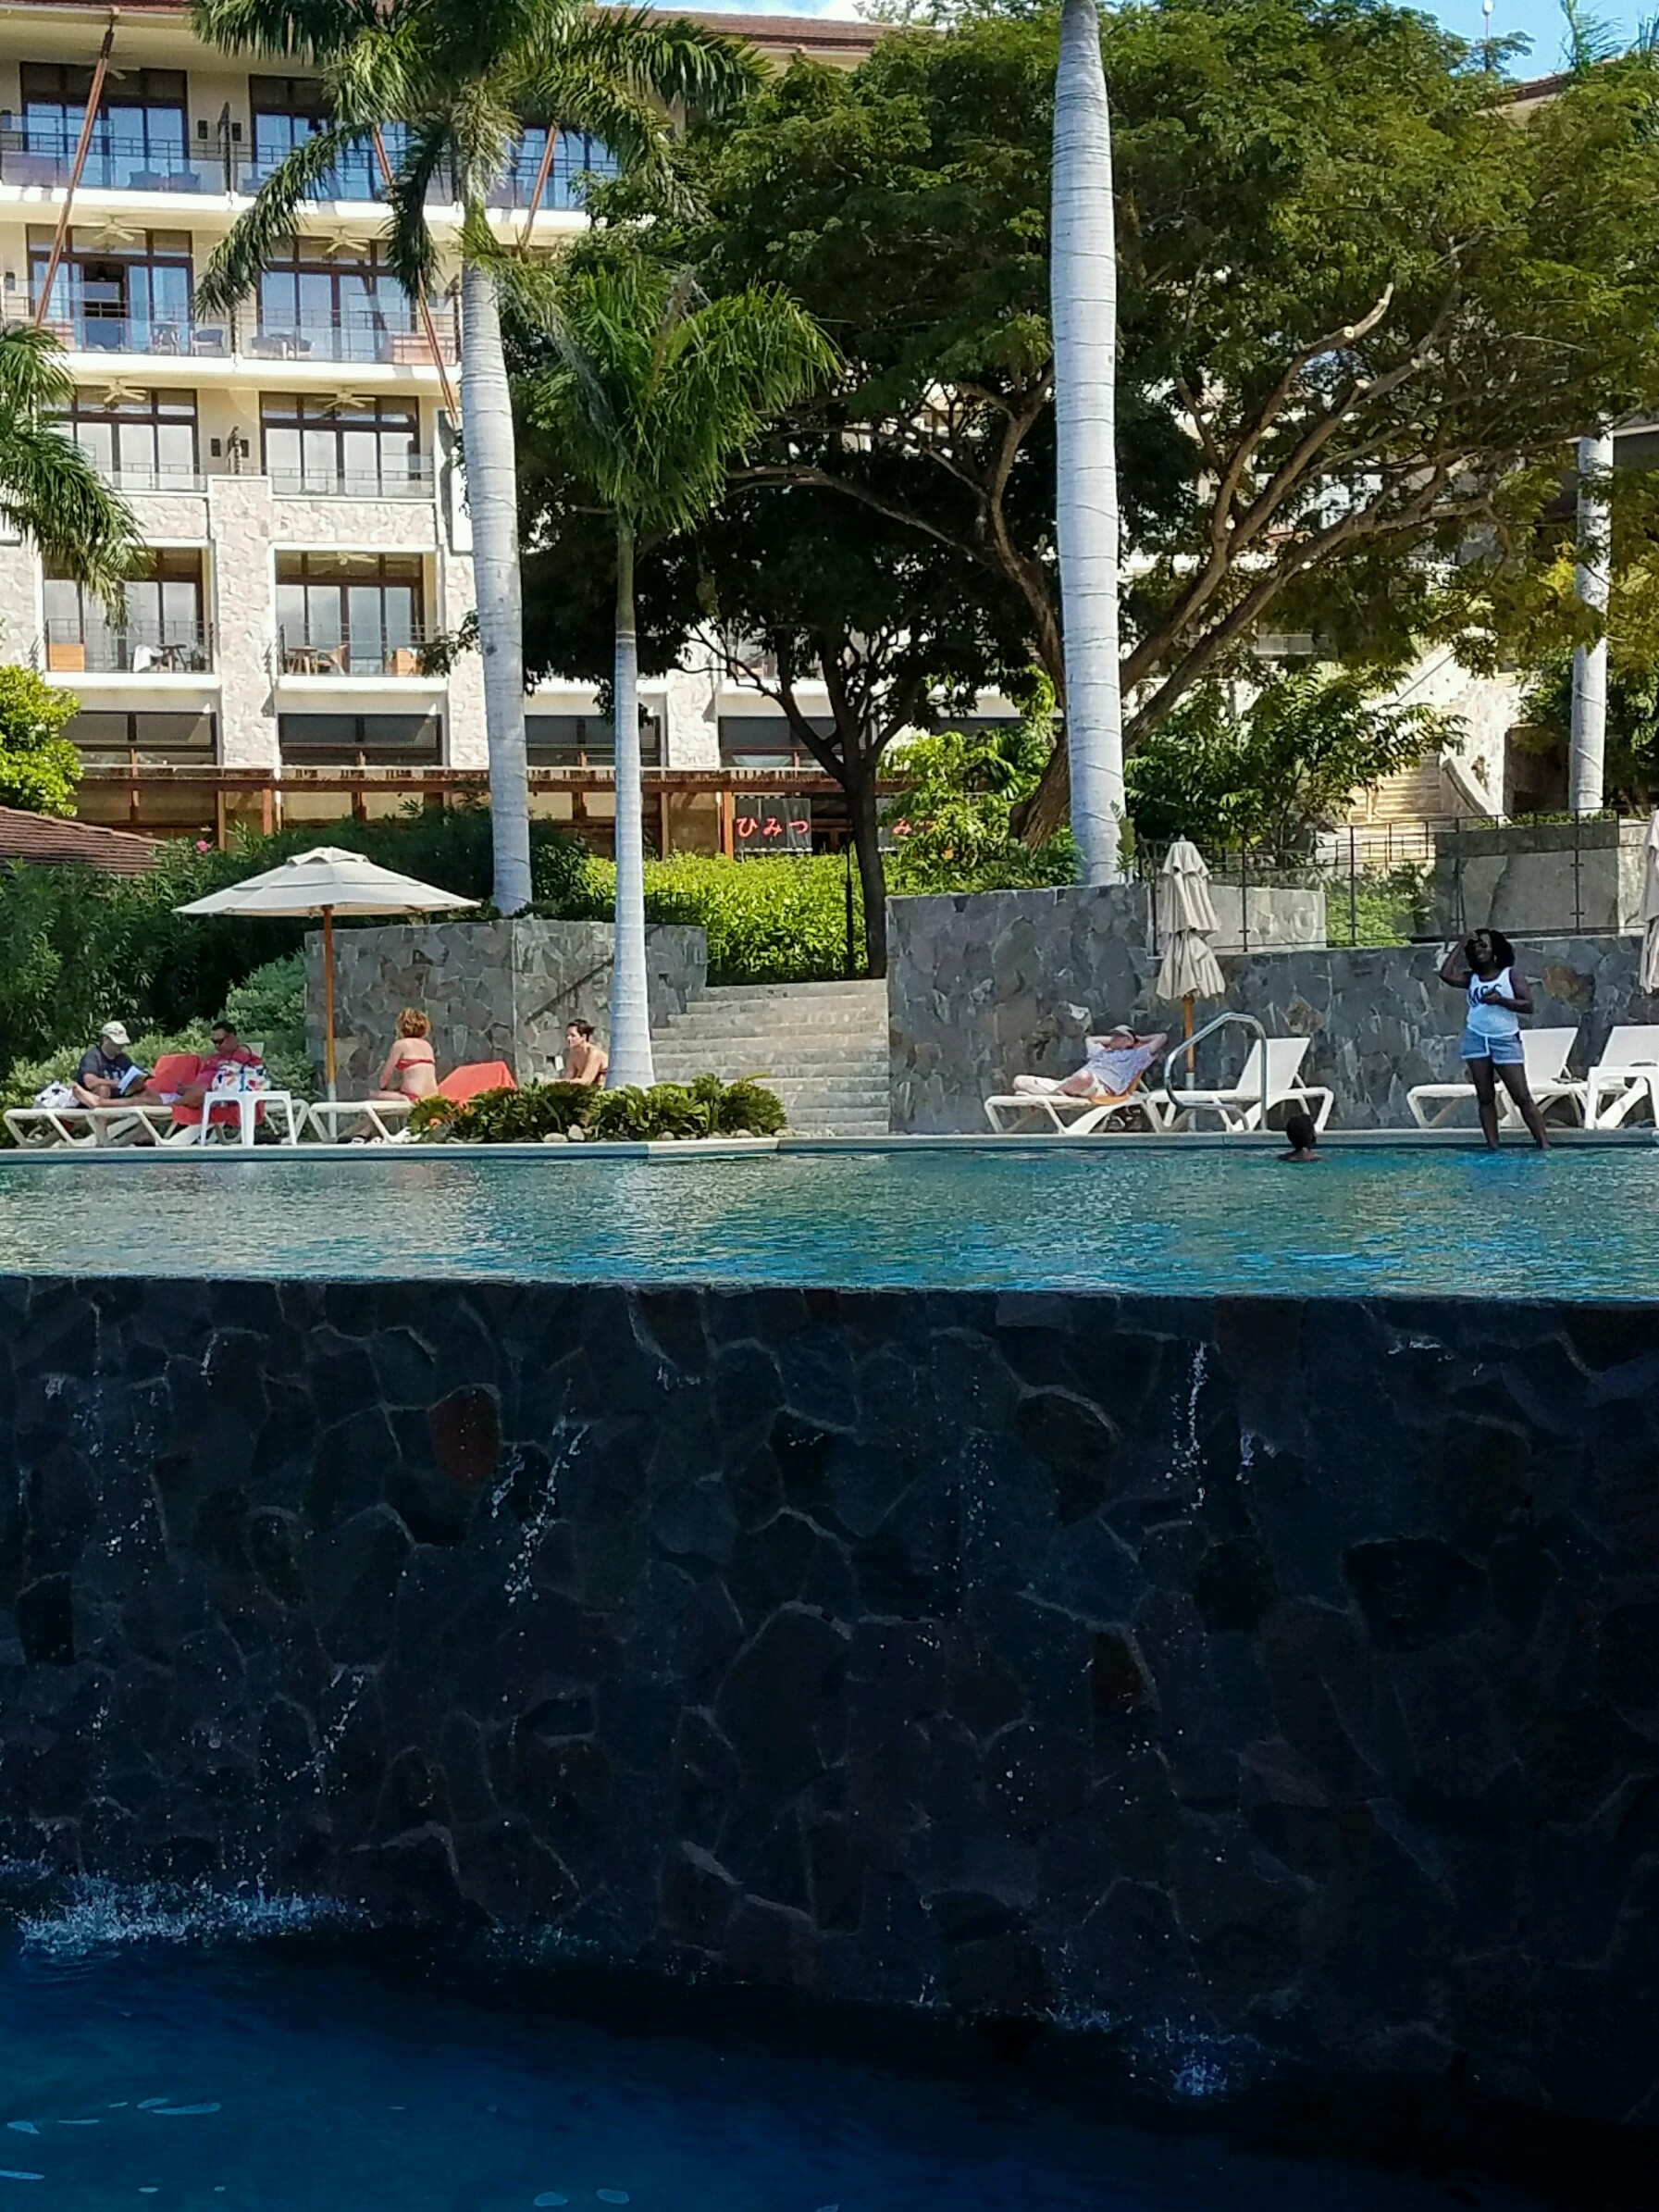 In   finity pools in the upper center of the resort. Bar and food service available during the day.